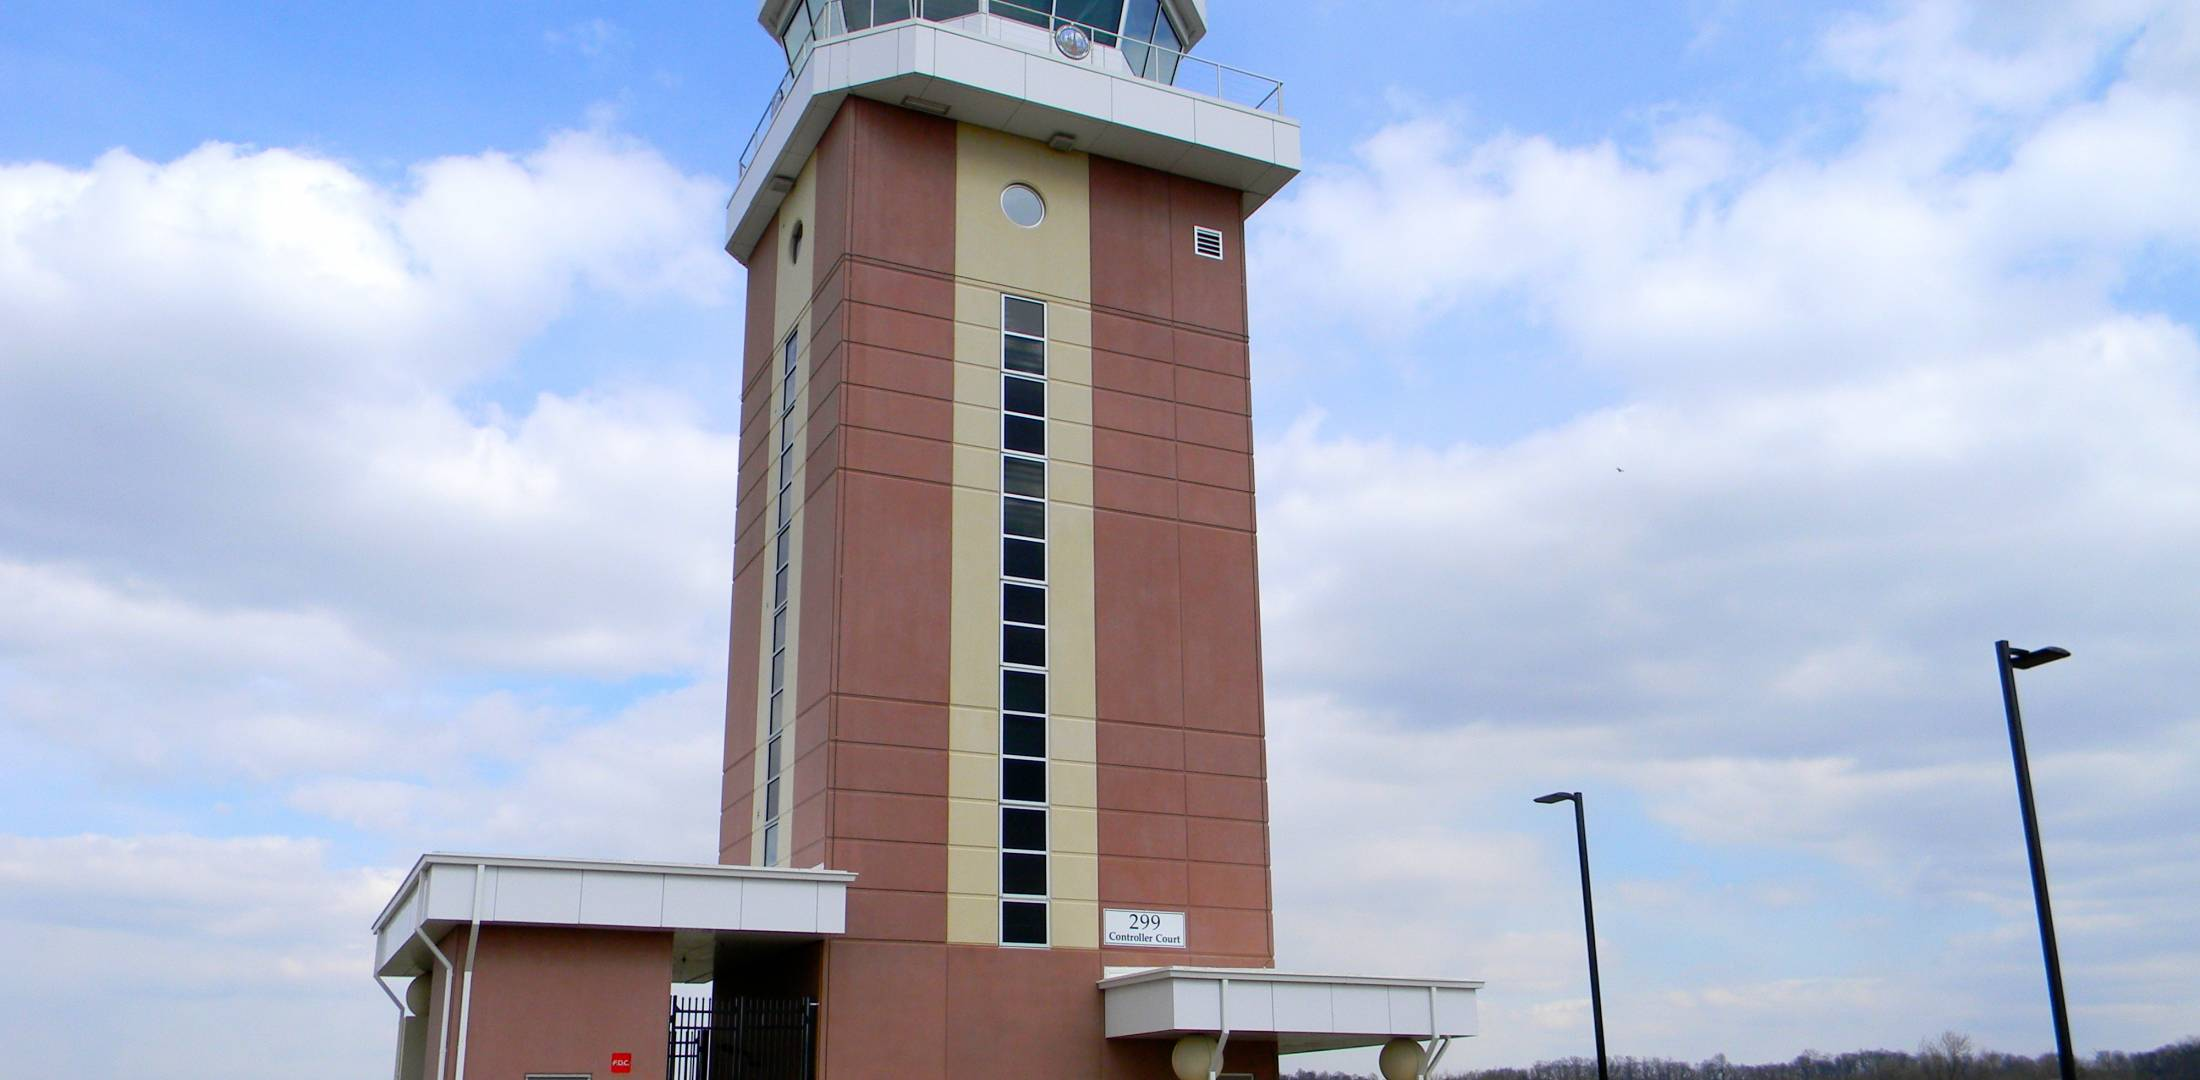 Frederick Municipal Airport ATC tower